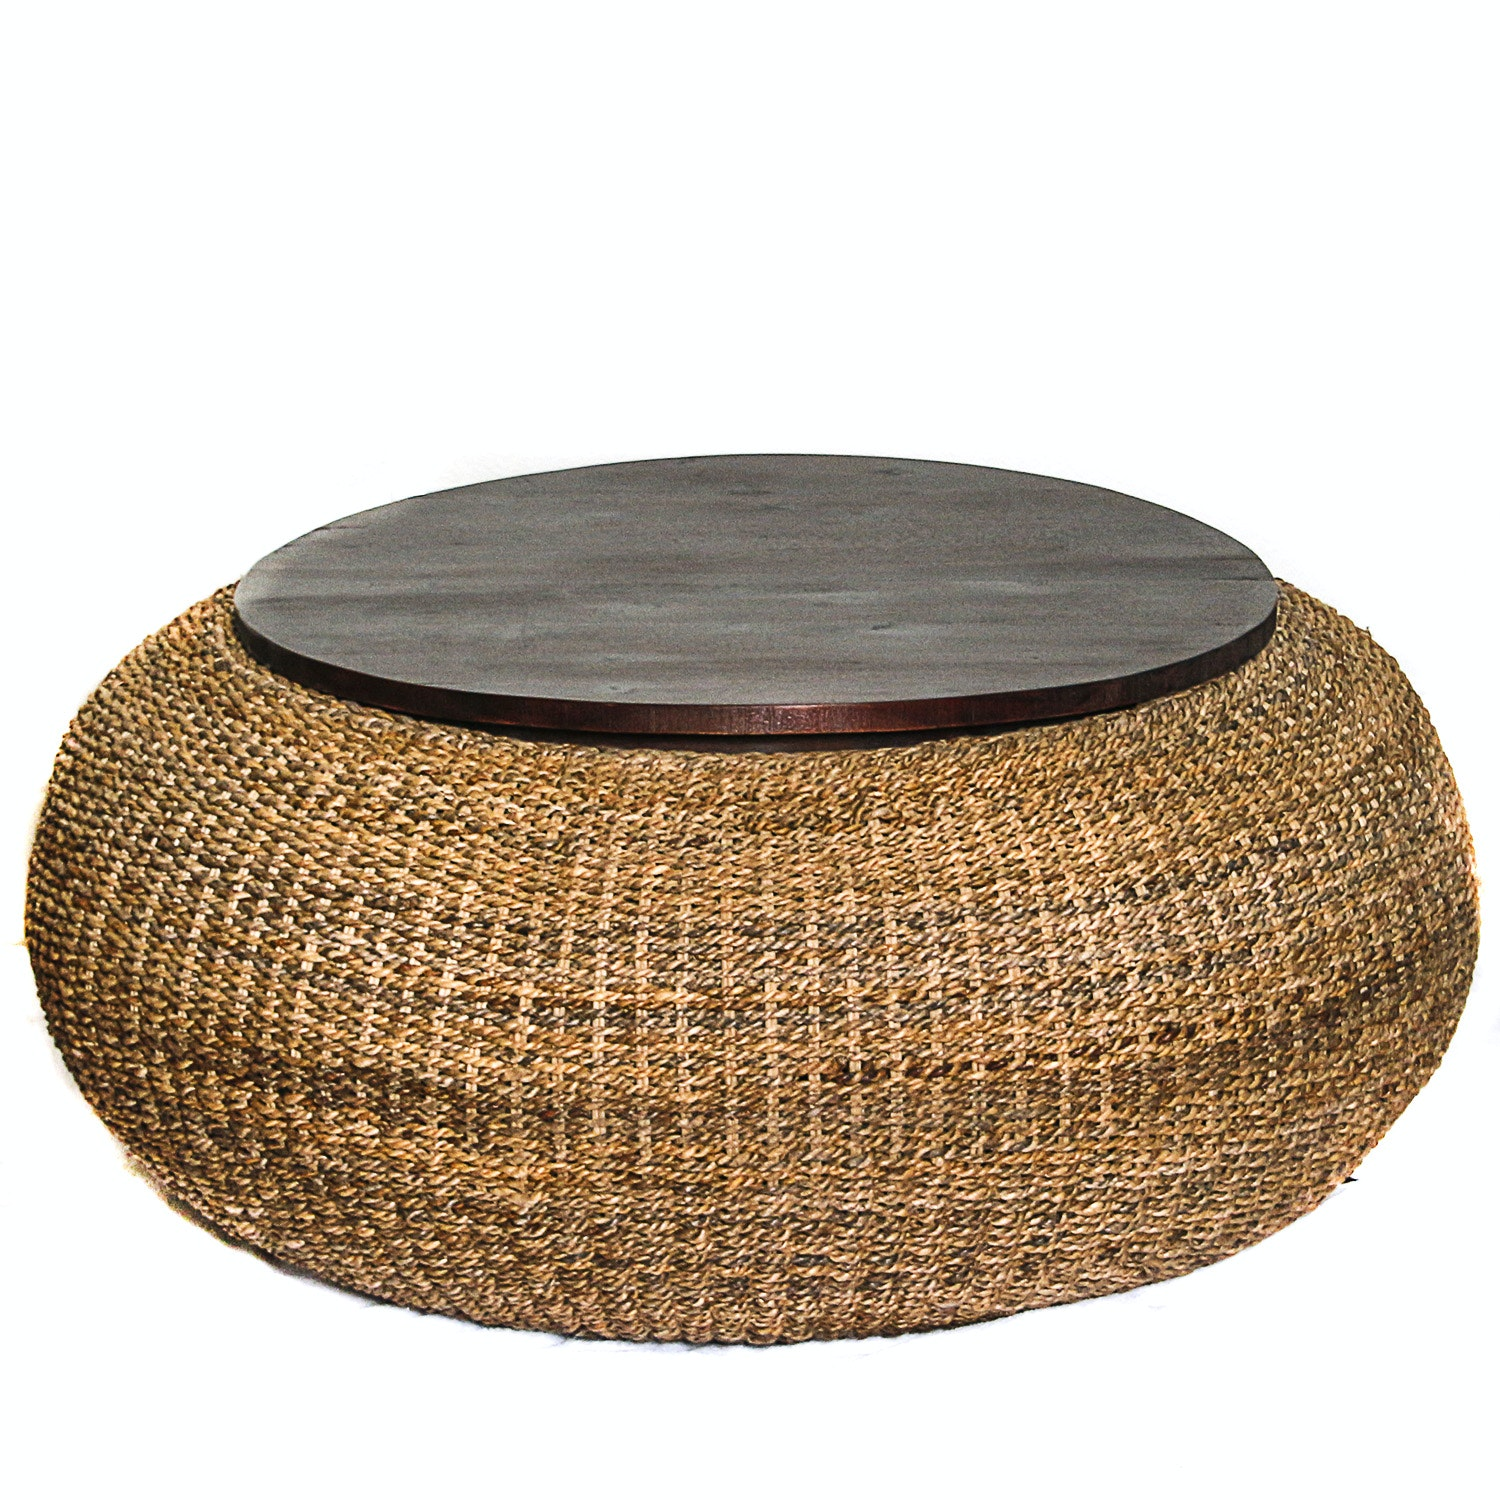 Woven Grass Storage Pouf Table